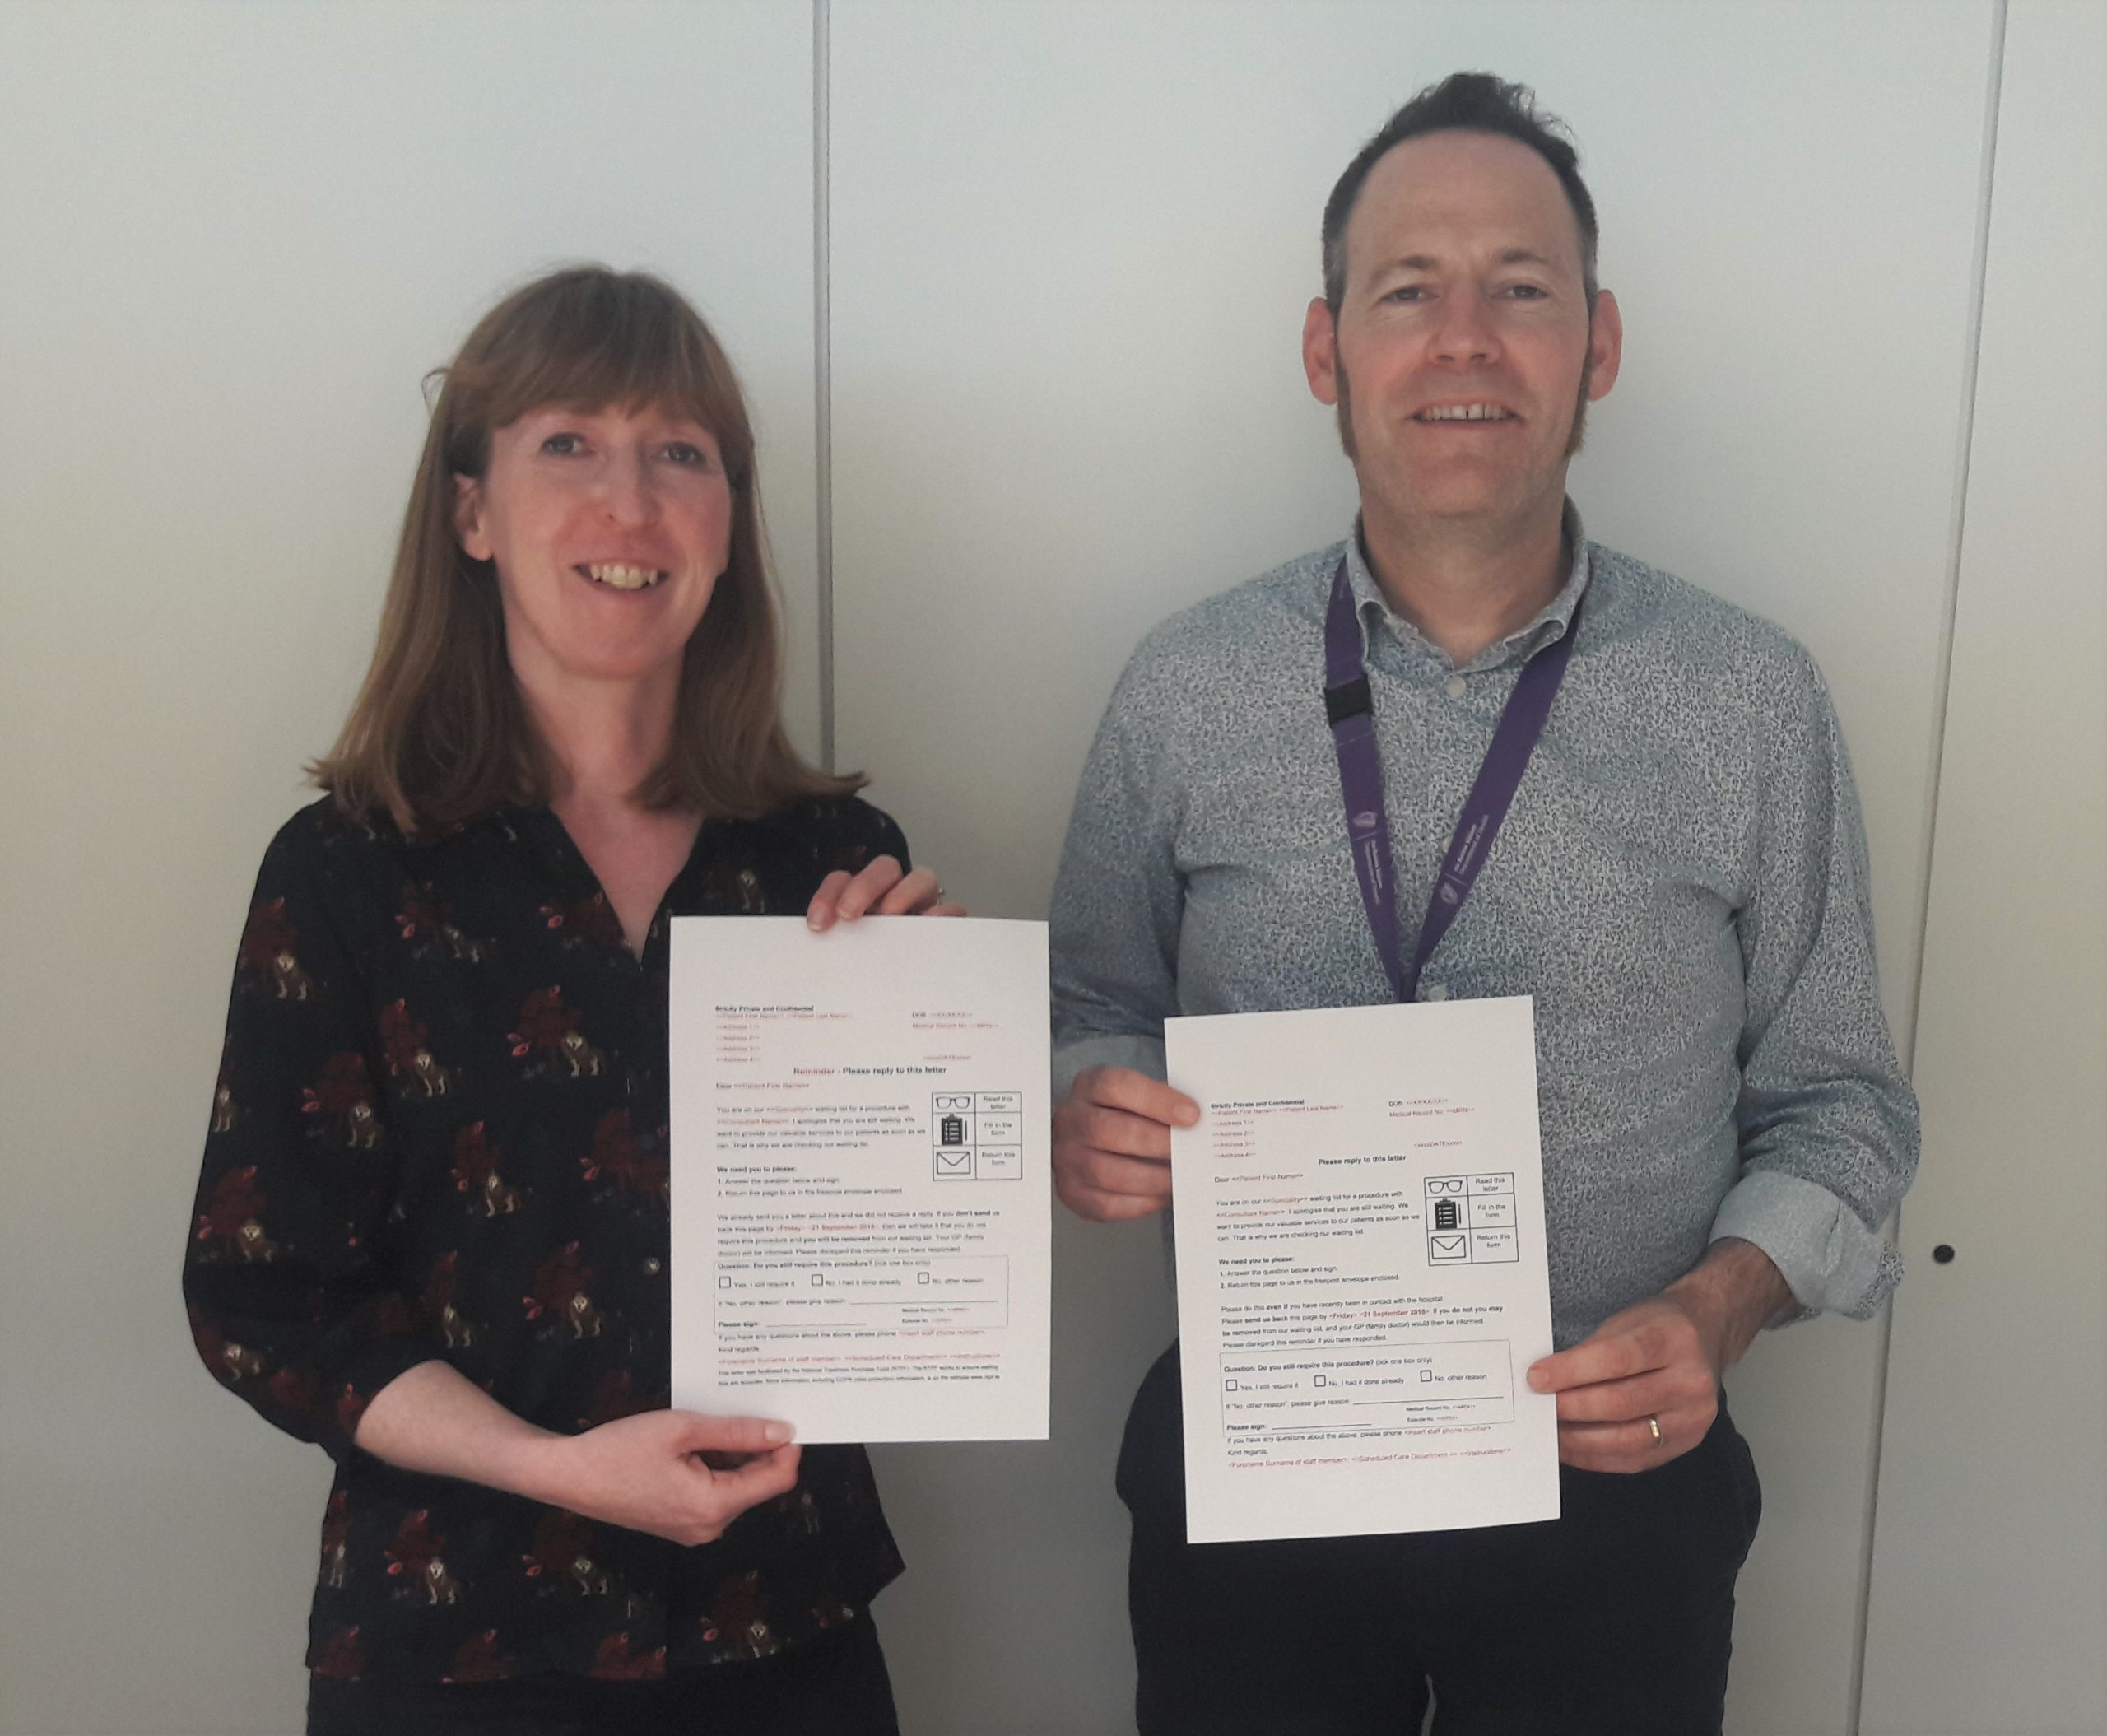 Robert Murphy and Carol Taaffe from Department of Health holding an example of redesigned patient correspondence